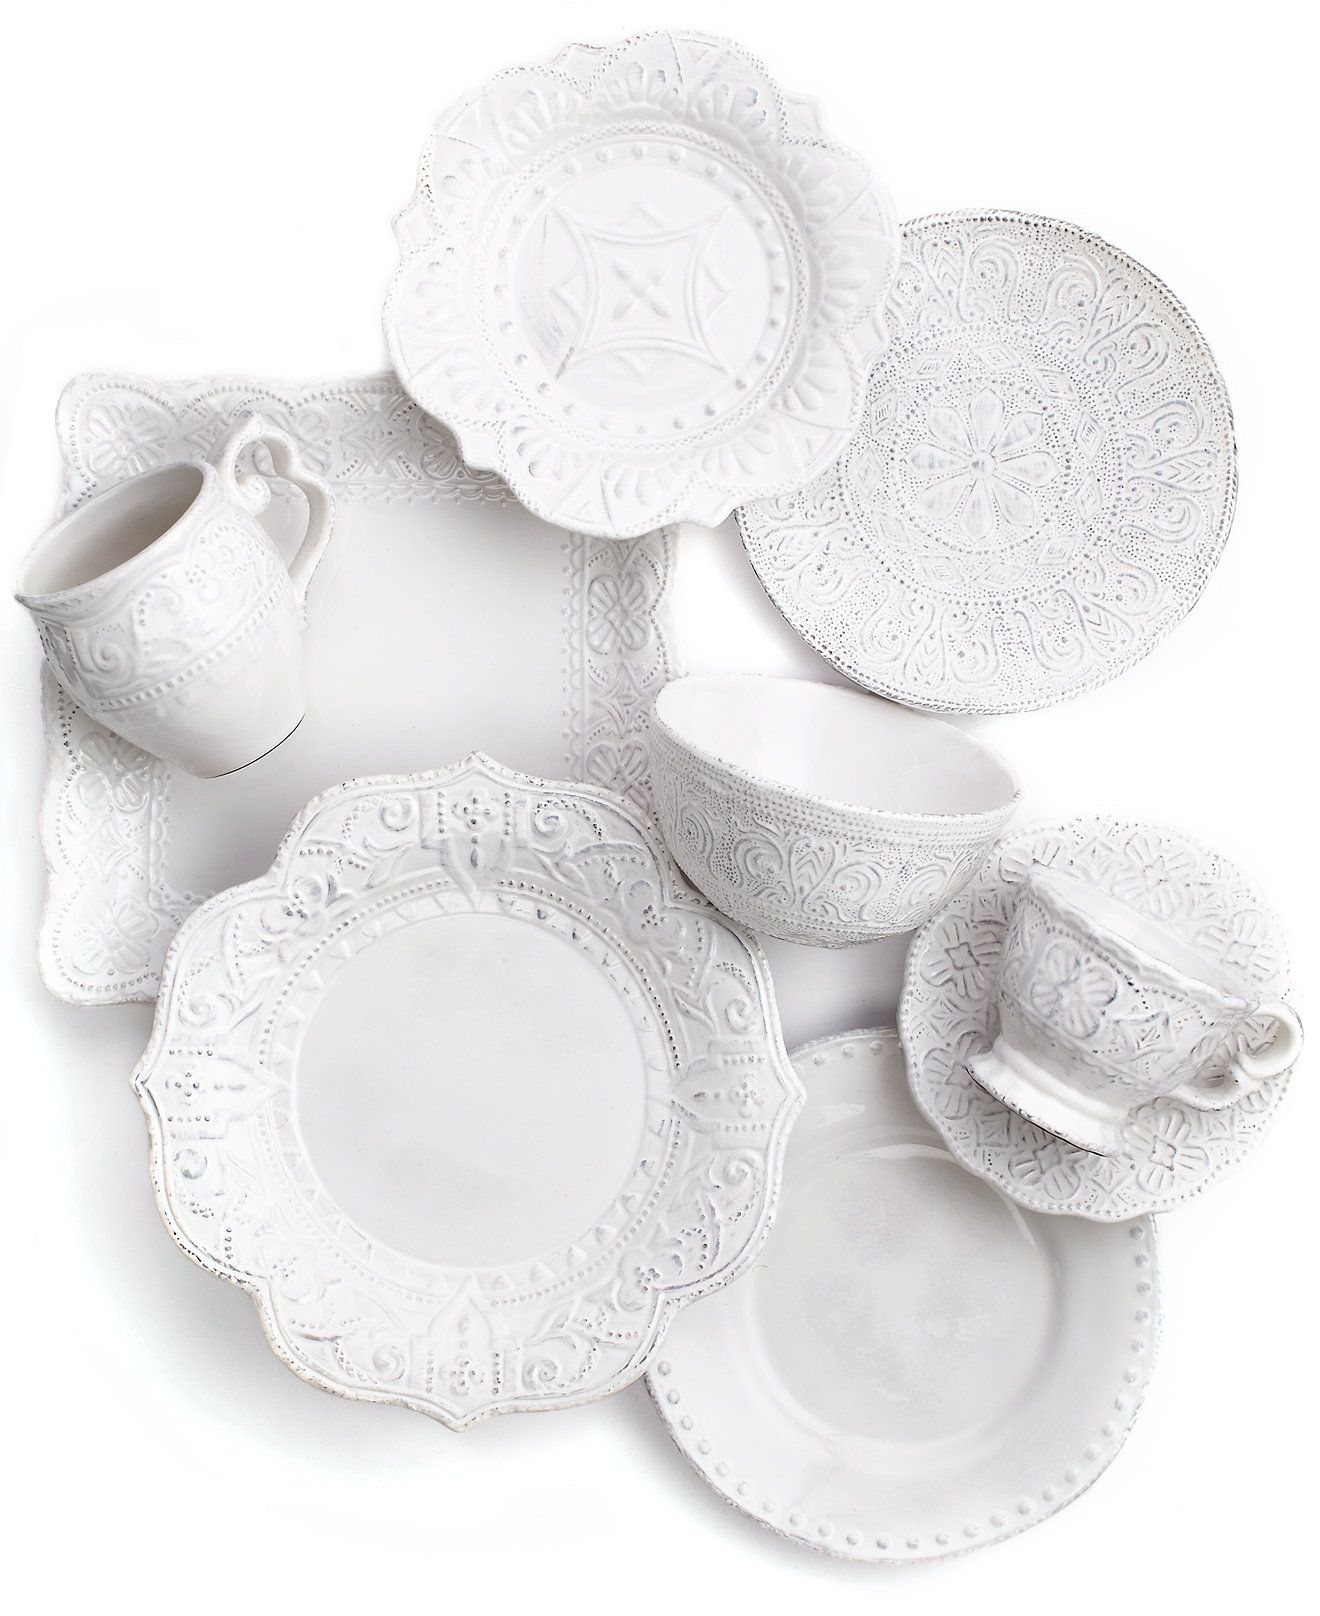 Maison Versailles Mix and Match Collection - Dinnerware - Dining u0026 Entertaining - Macyu0027s  sc 1 st  Pinterest : white french dinnerware - Pezcame.Com